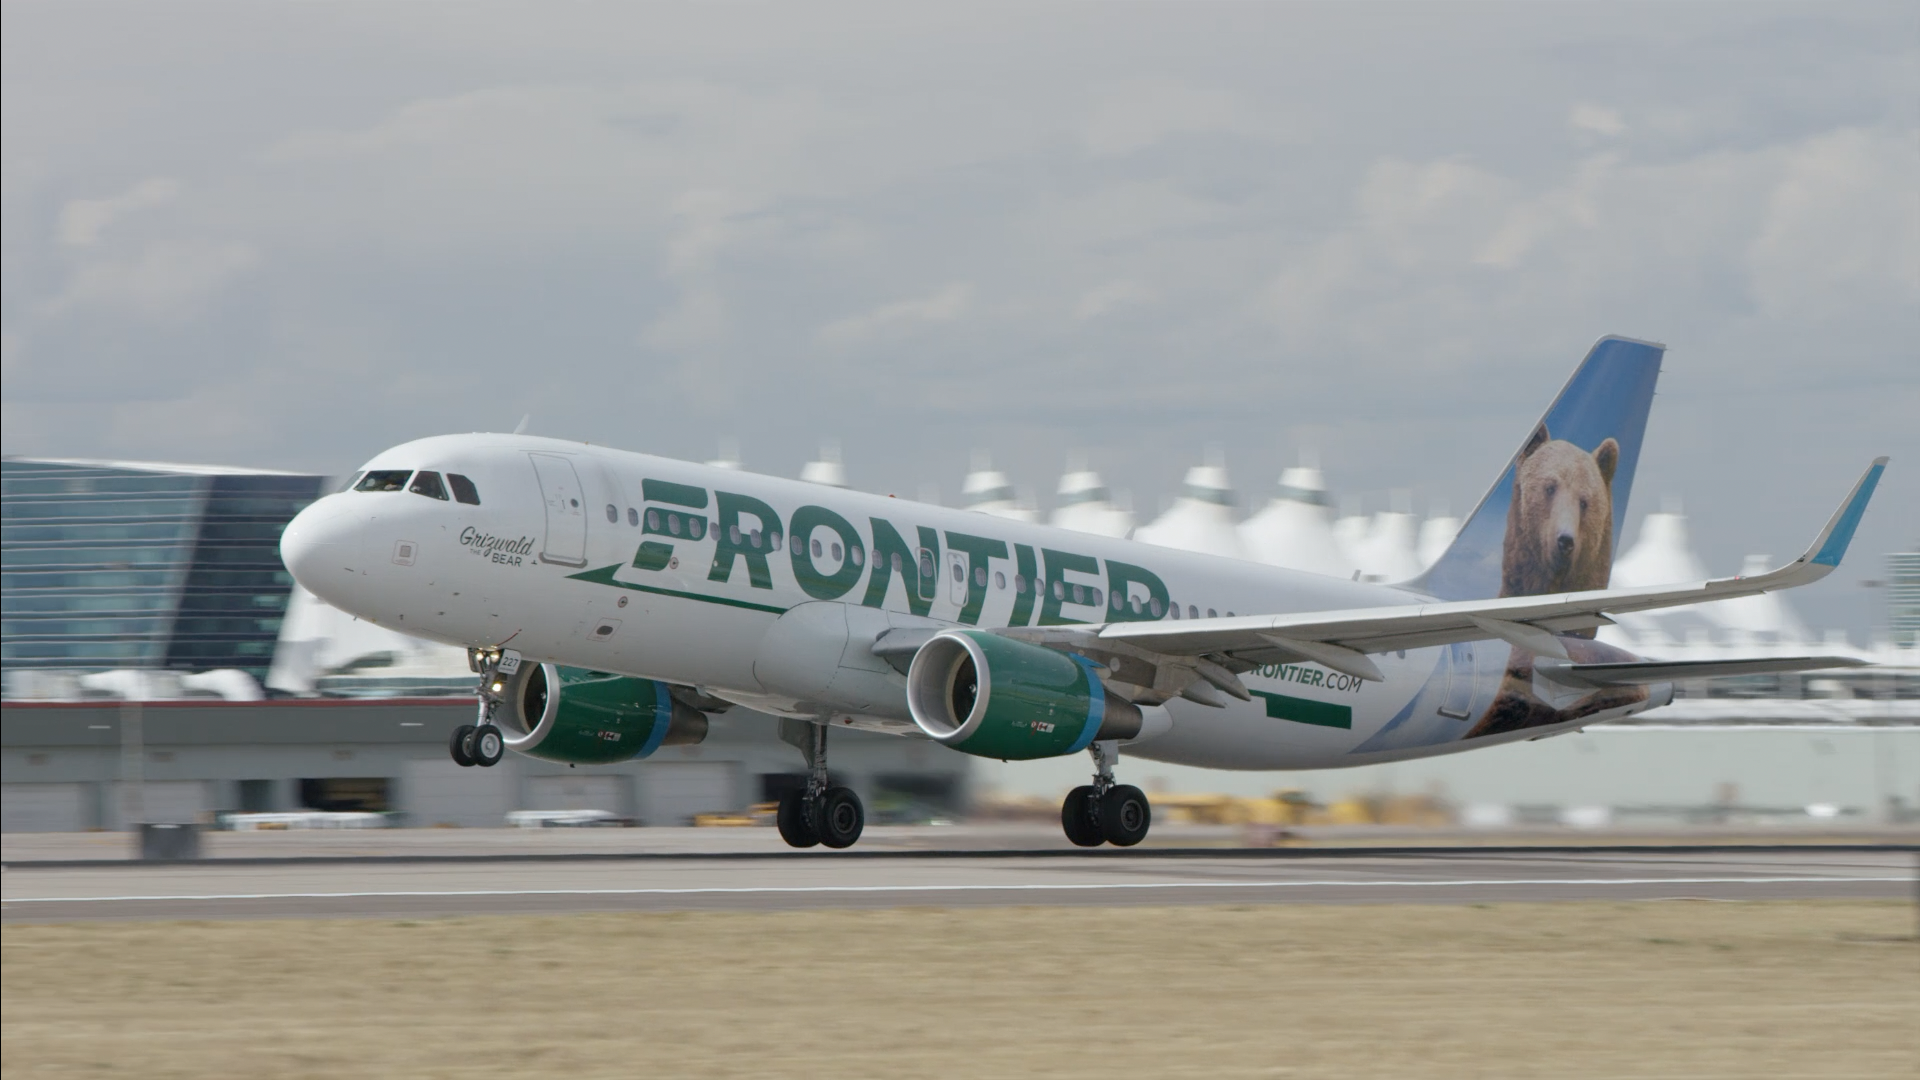 Frontier CEO says CDC should update coronavirus travel advice: 'Flying is not dangerous'